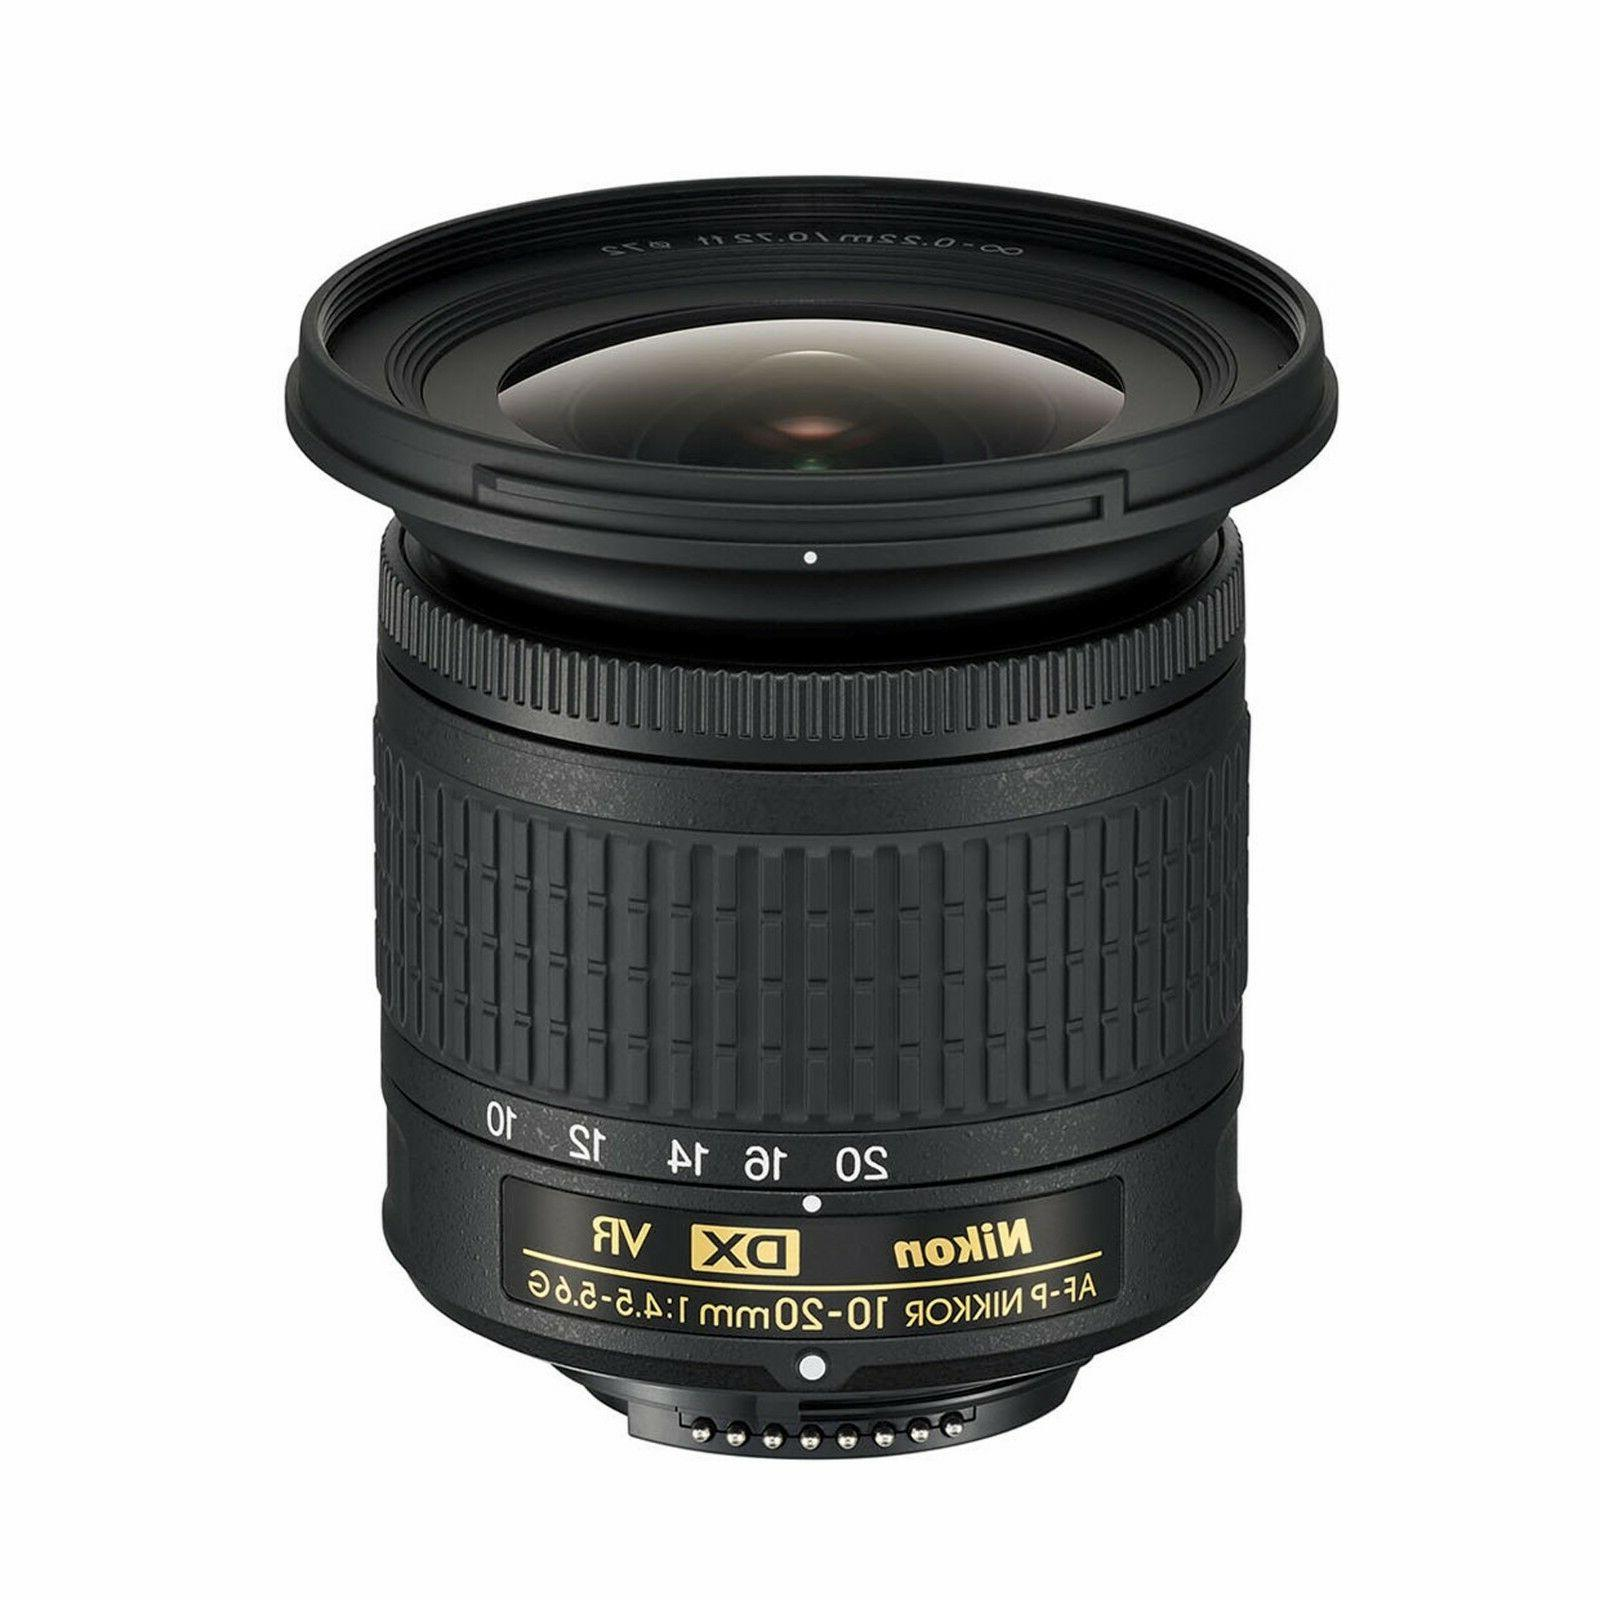 Nikon DX 10-20mm F/4.5-5.6G VR *IN